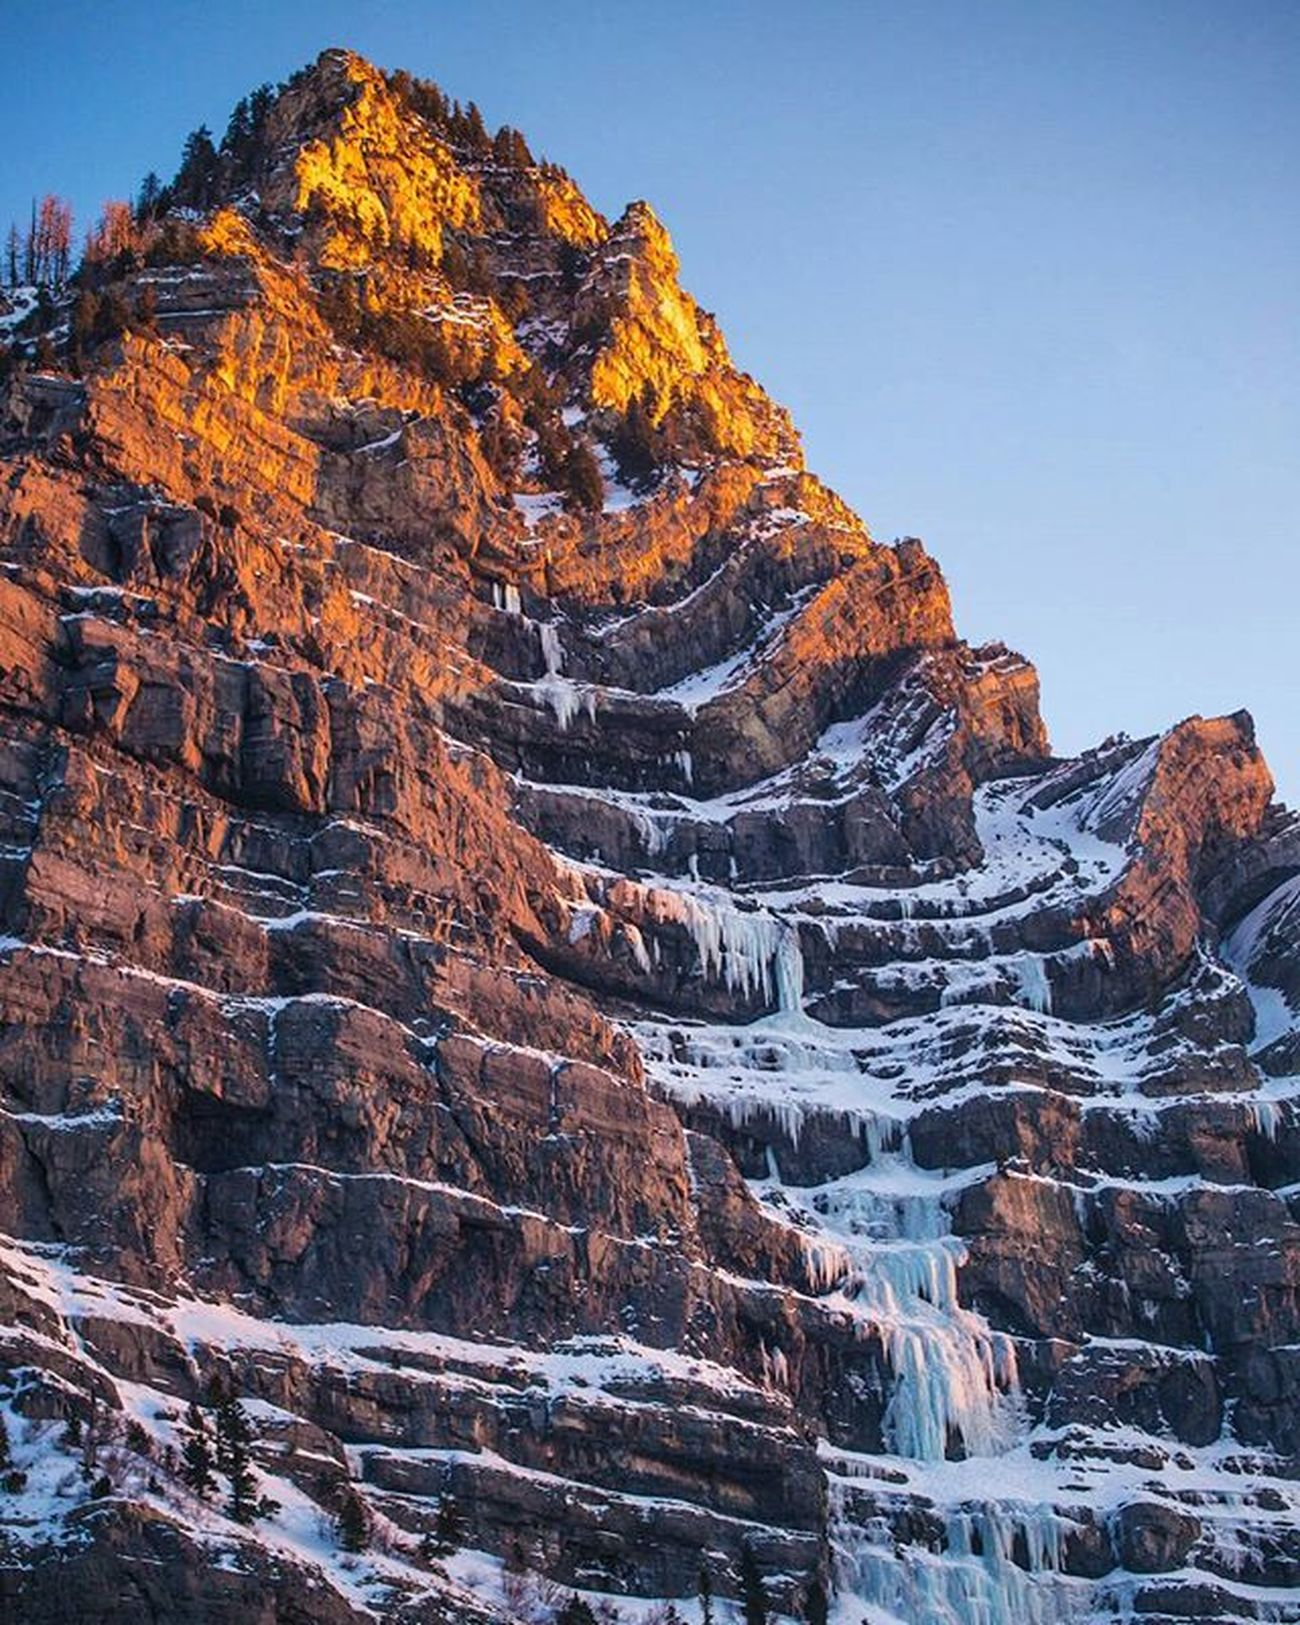 Sunset painting warm colors against the cold cliffs and ice along Provo Canyon. ------ Provo Provocanyon Visitutahvalley Utah Sunsetcolors Winters Provout Utahwinter Bestmountainartists